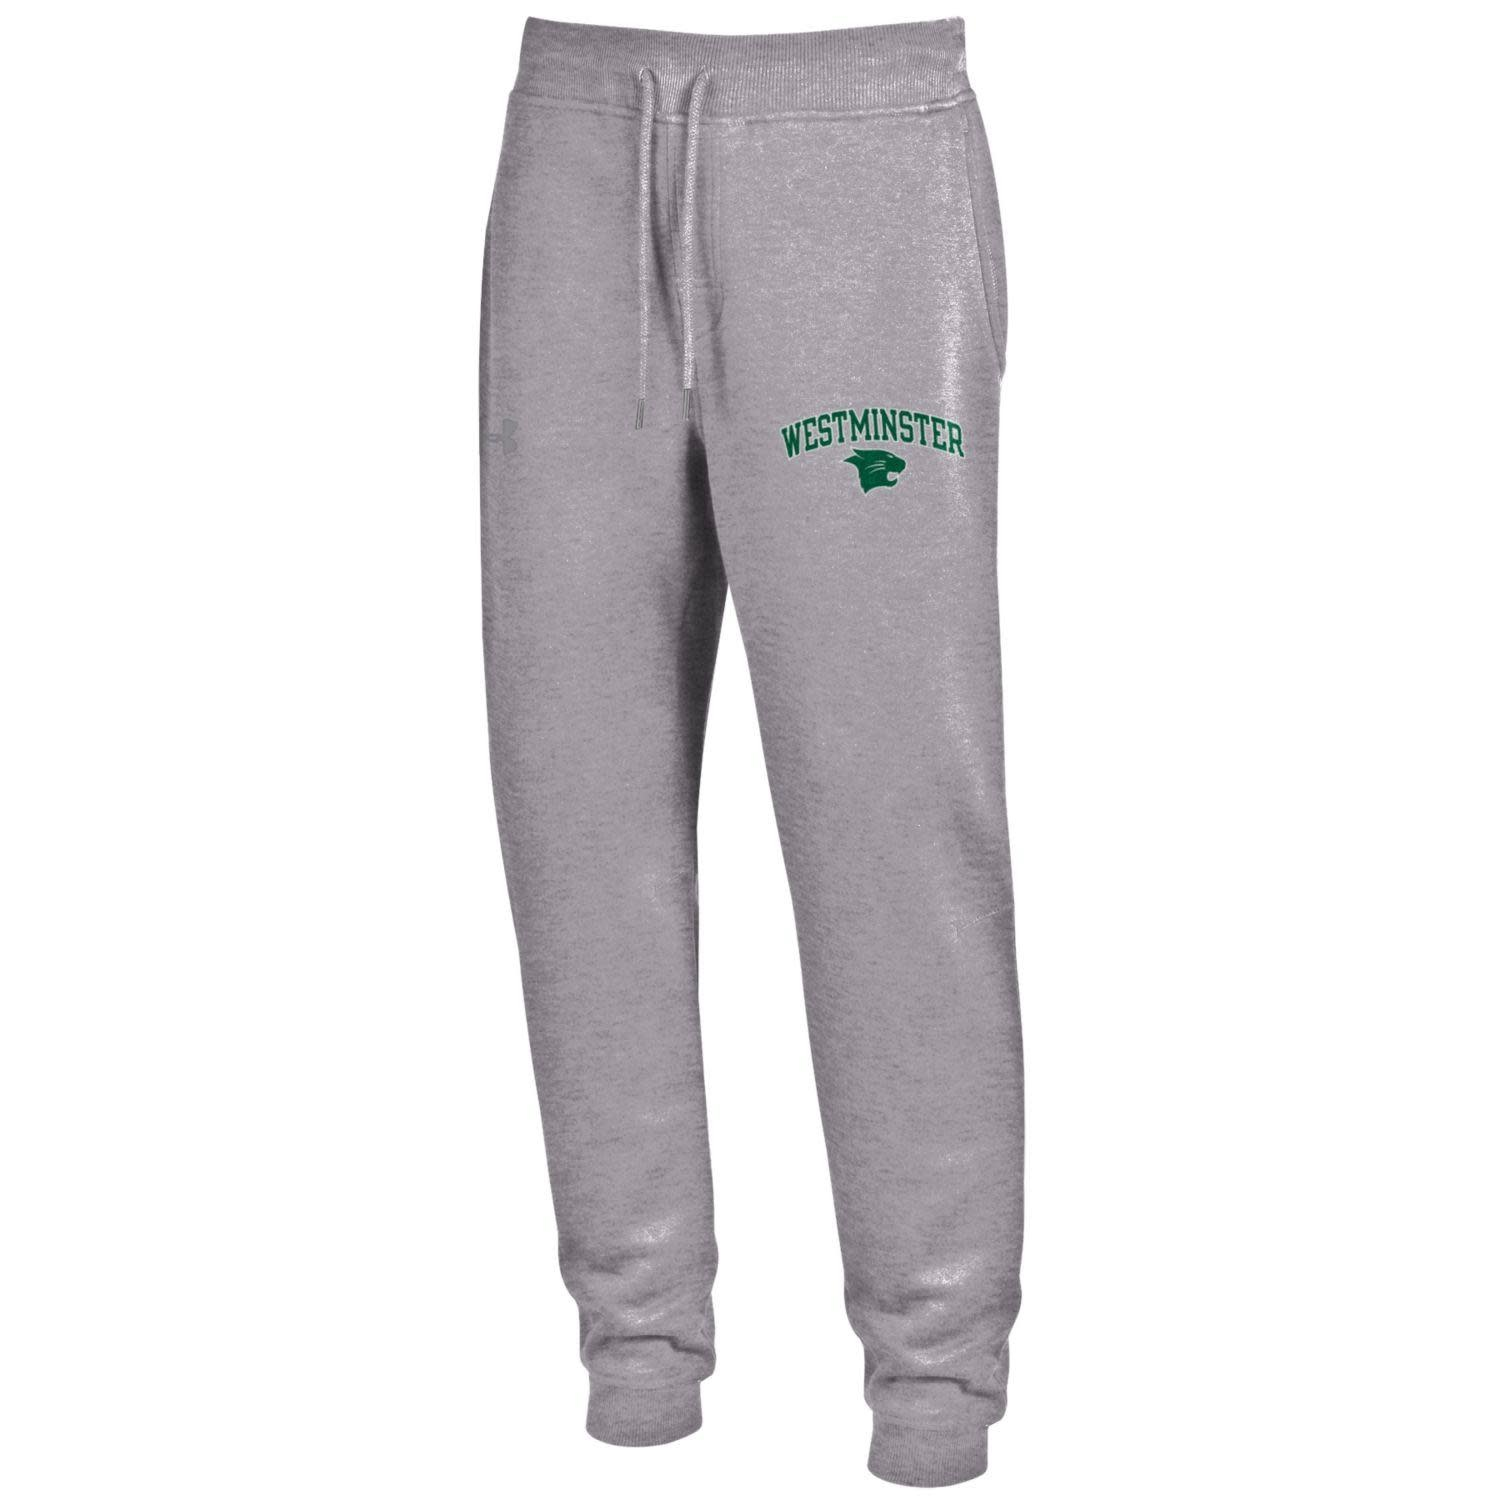 Under Armour Sweatpants: UA Rival Cotton True Gray Heather - Ribbed Top and Cuff